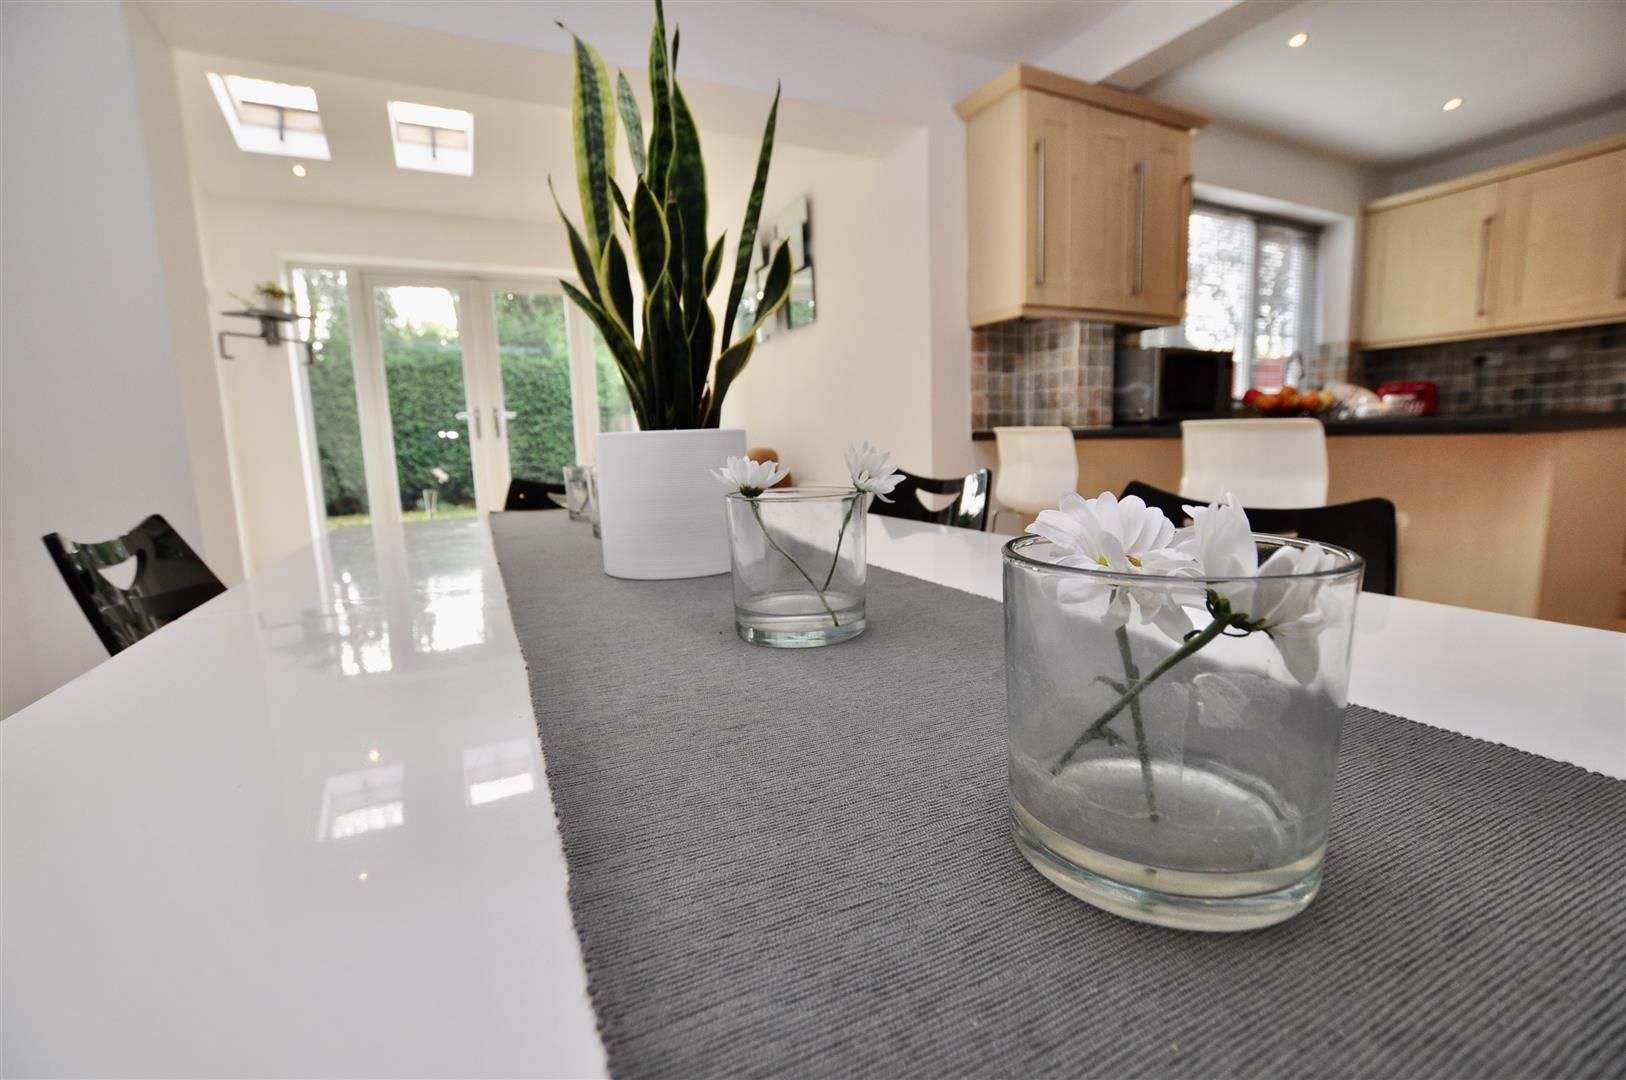 4 bed house for sale in Hagley  - Property Image 8